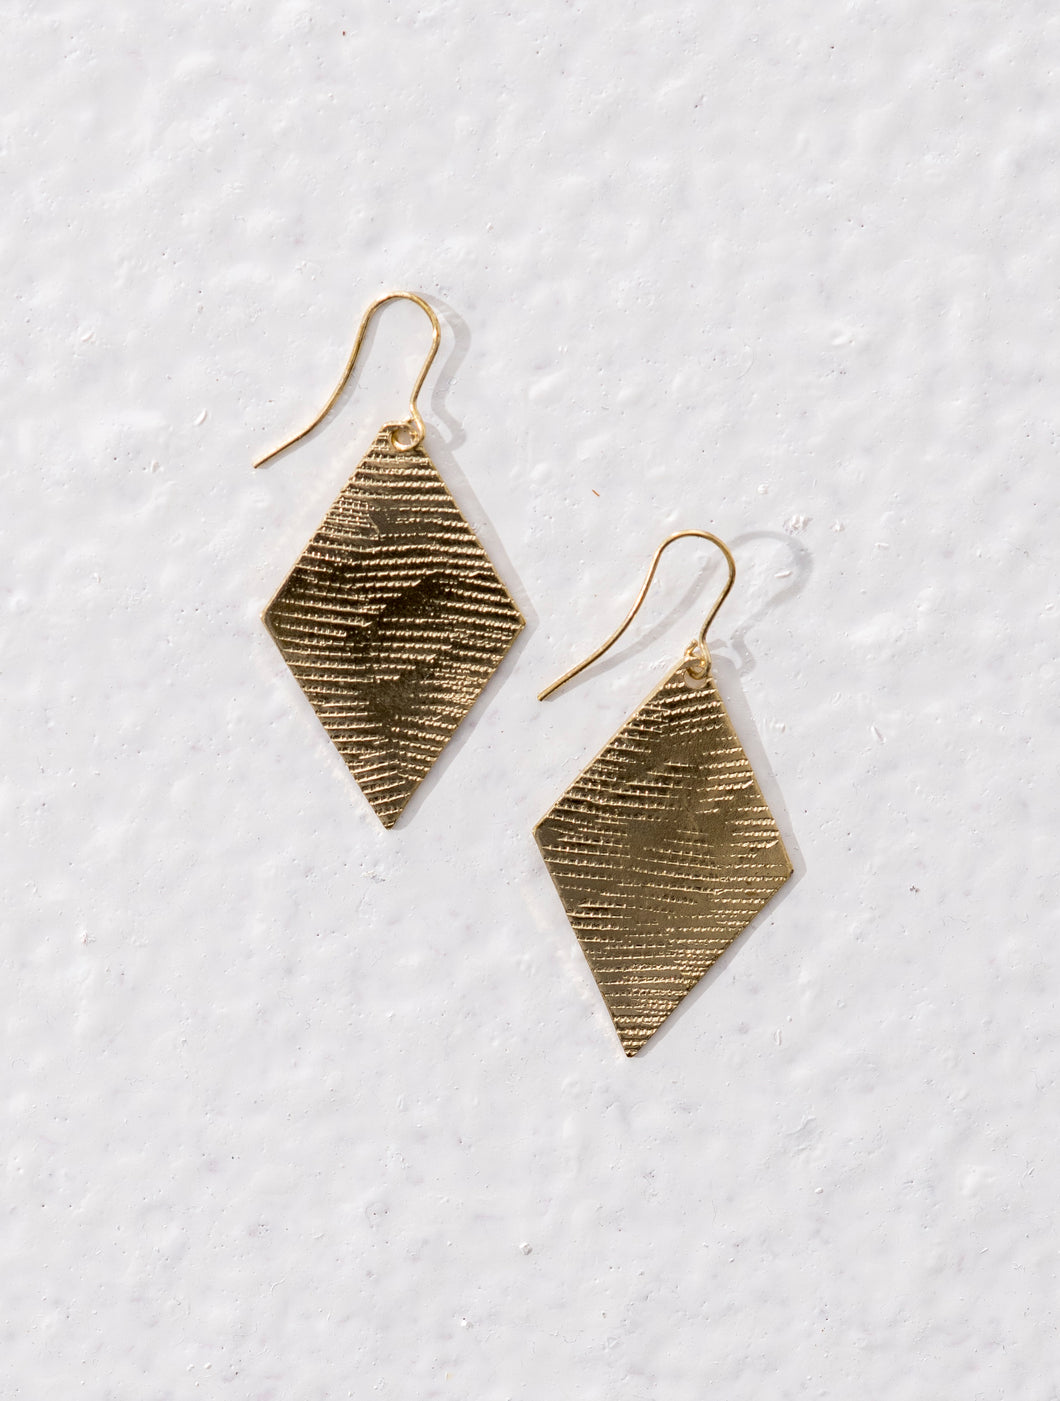 Diamond shaped ethical jewellery drop earrings made of brass with rough textured effect.